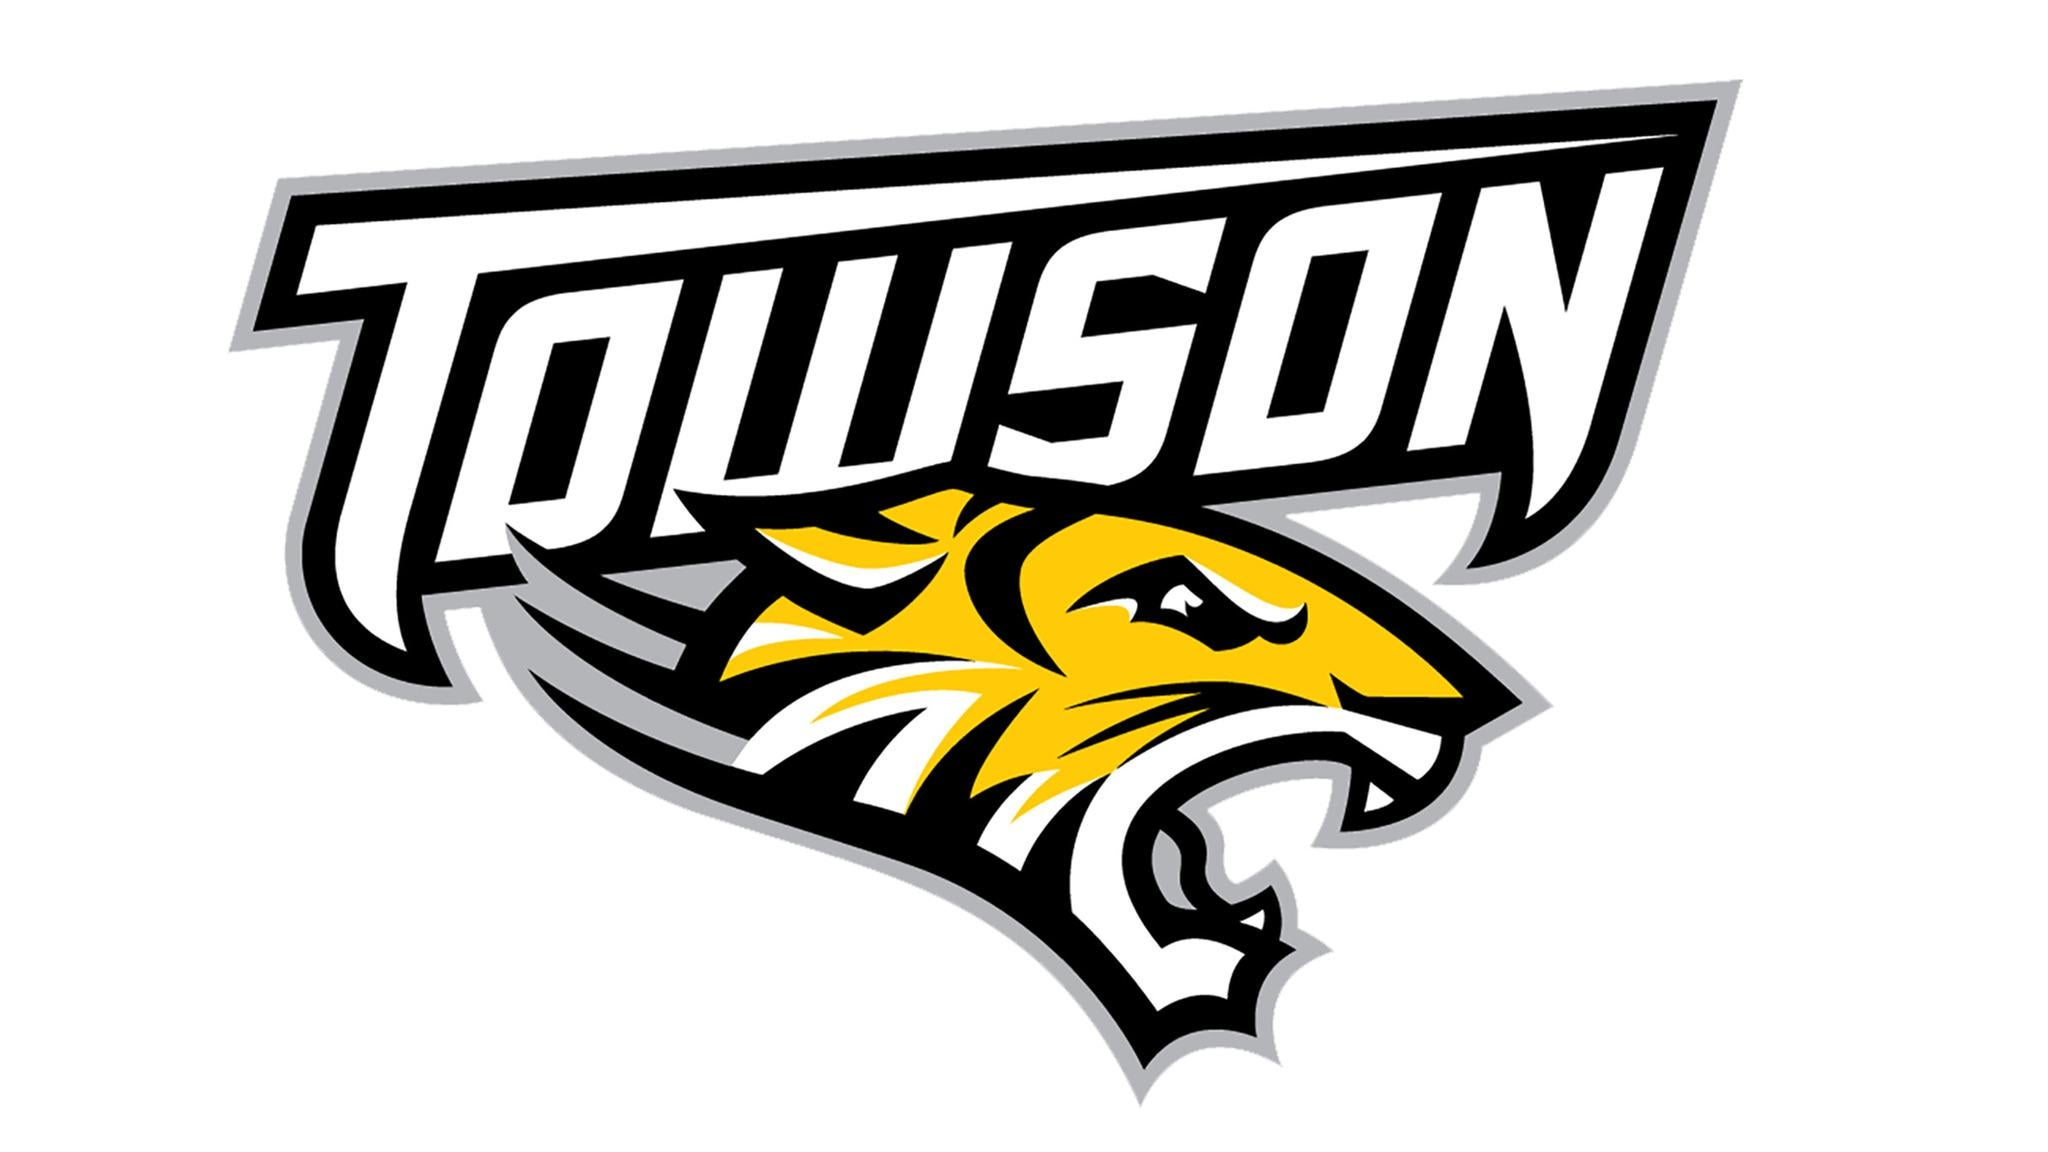 Towson University Tigers Football vs. Bucknell University Football